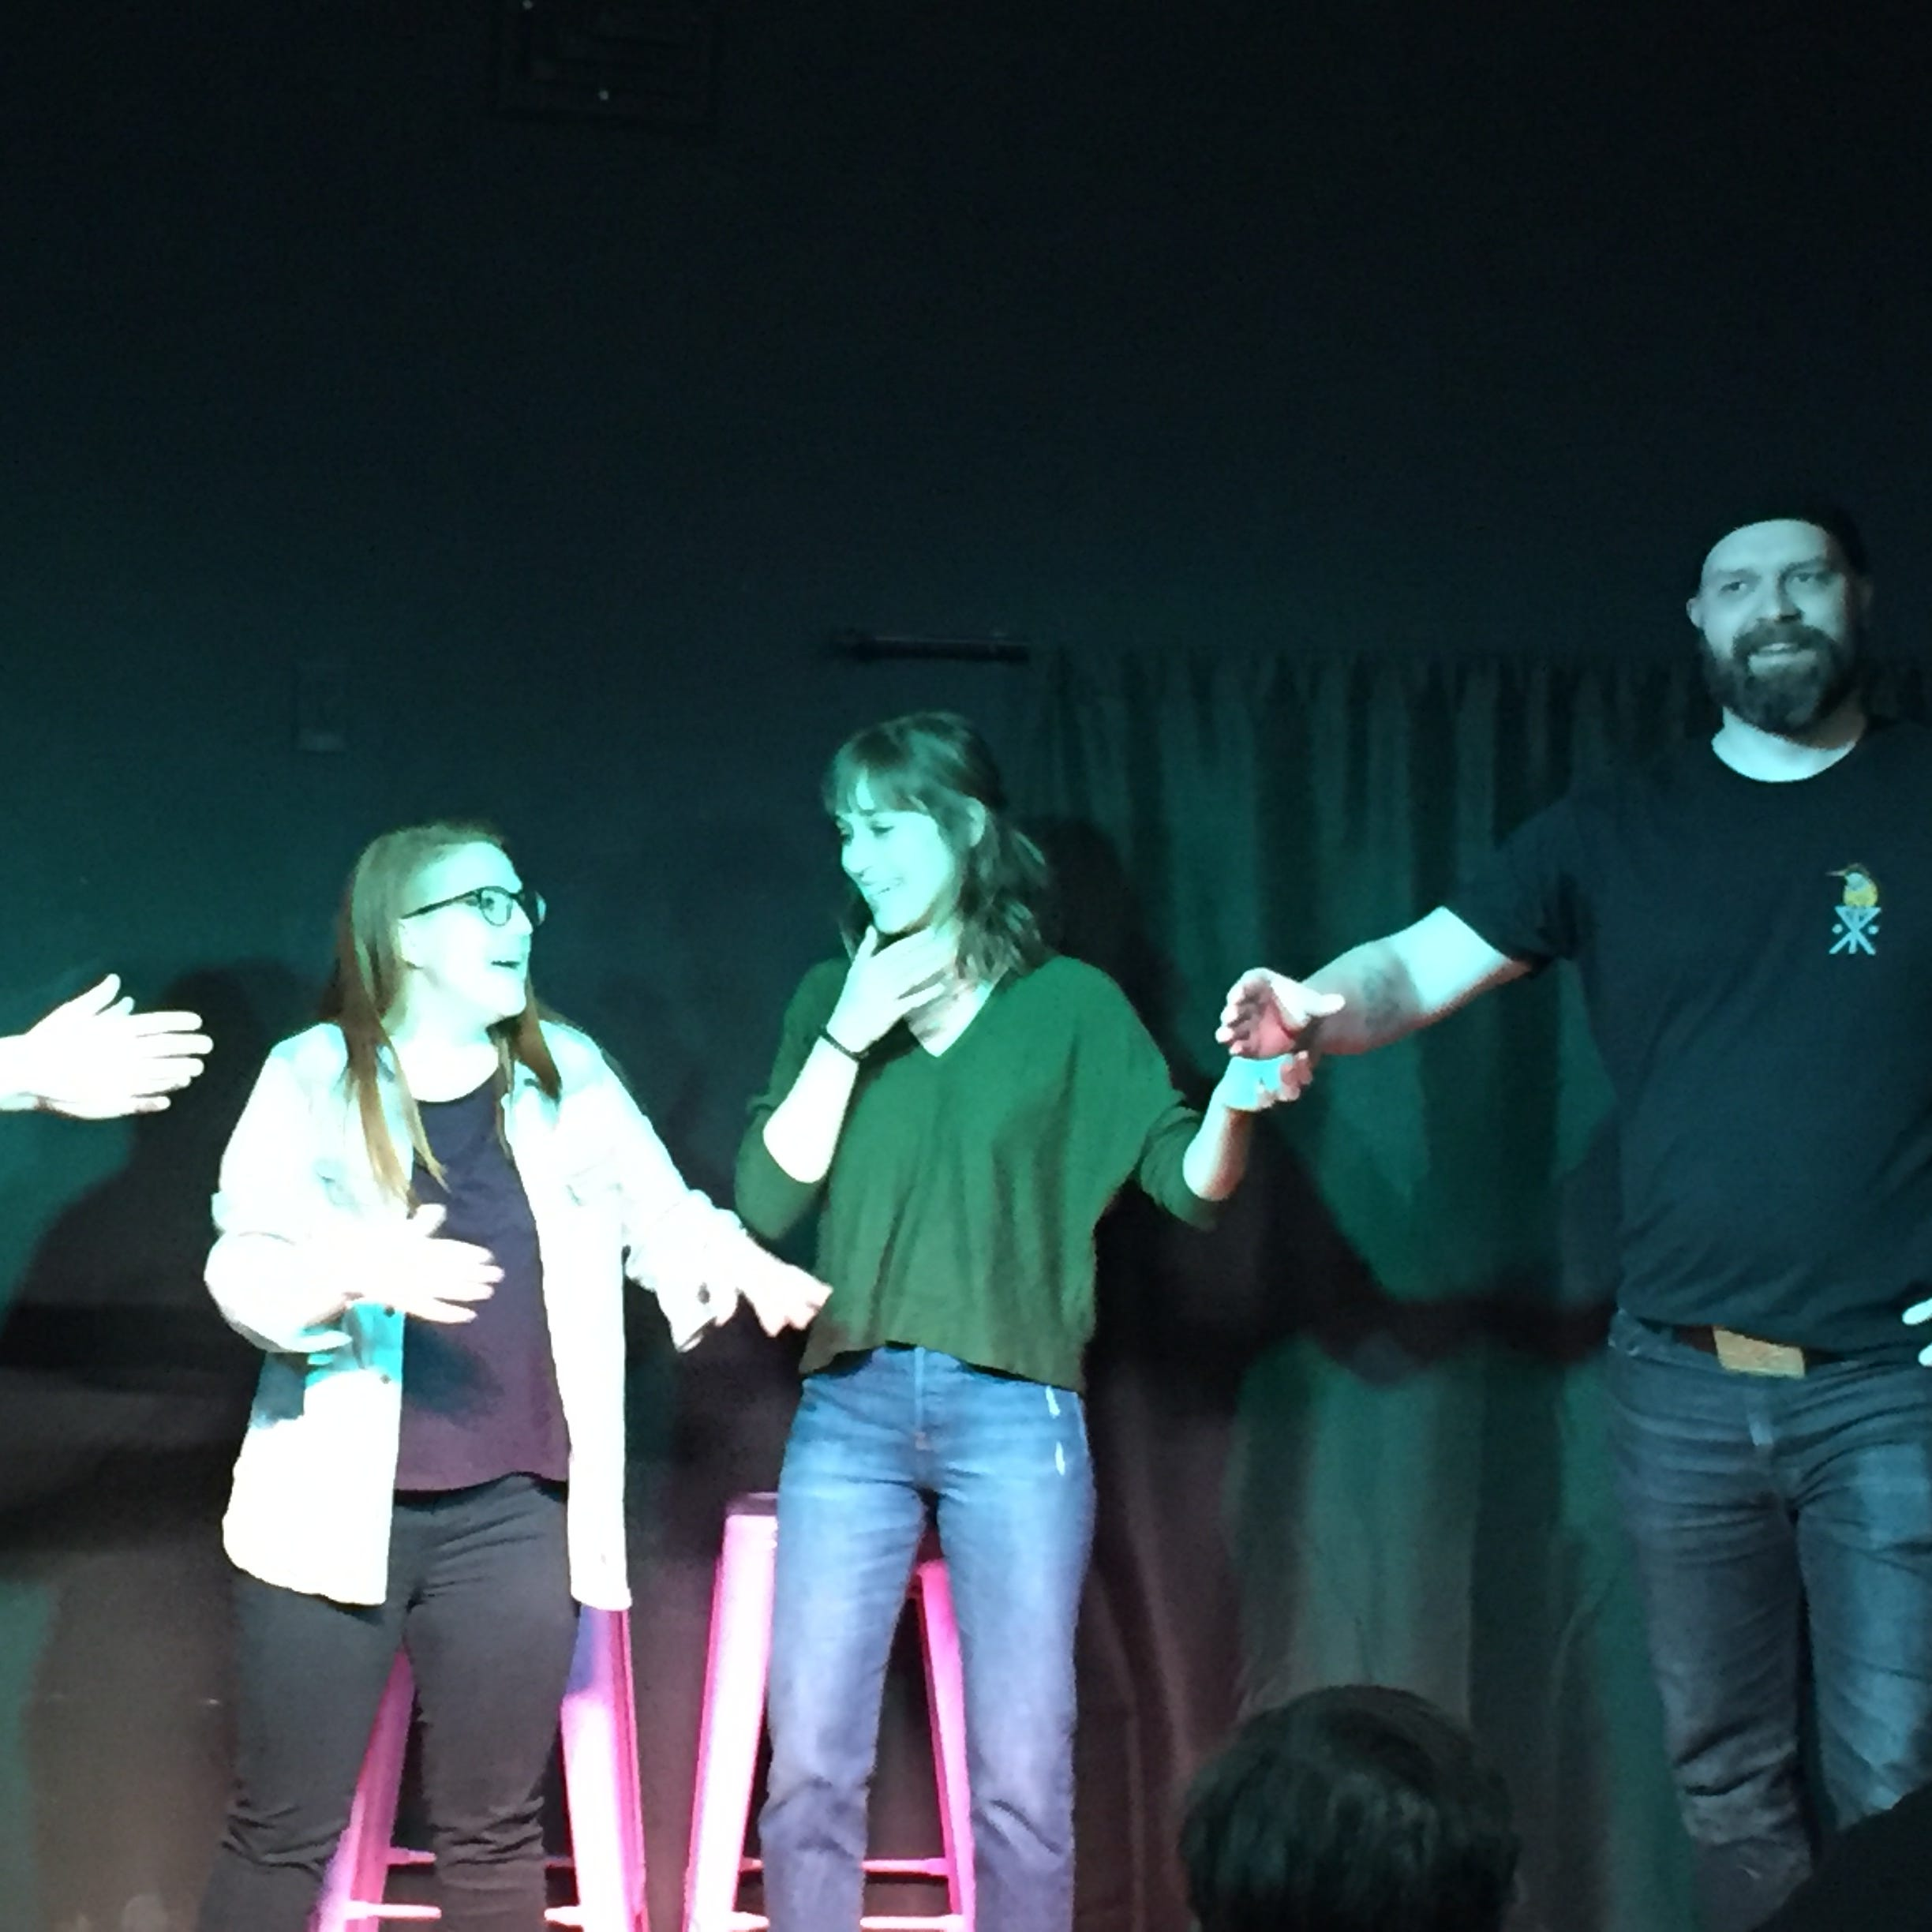 Weed-induced improv-comedy event in Burlington puts the doobie in 'Dubious Advice'